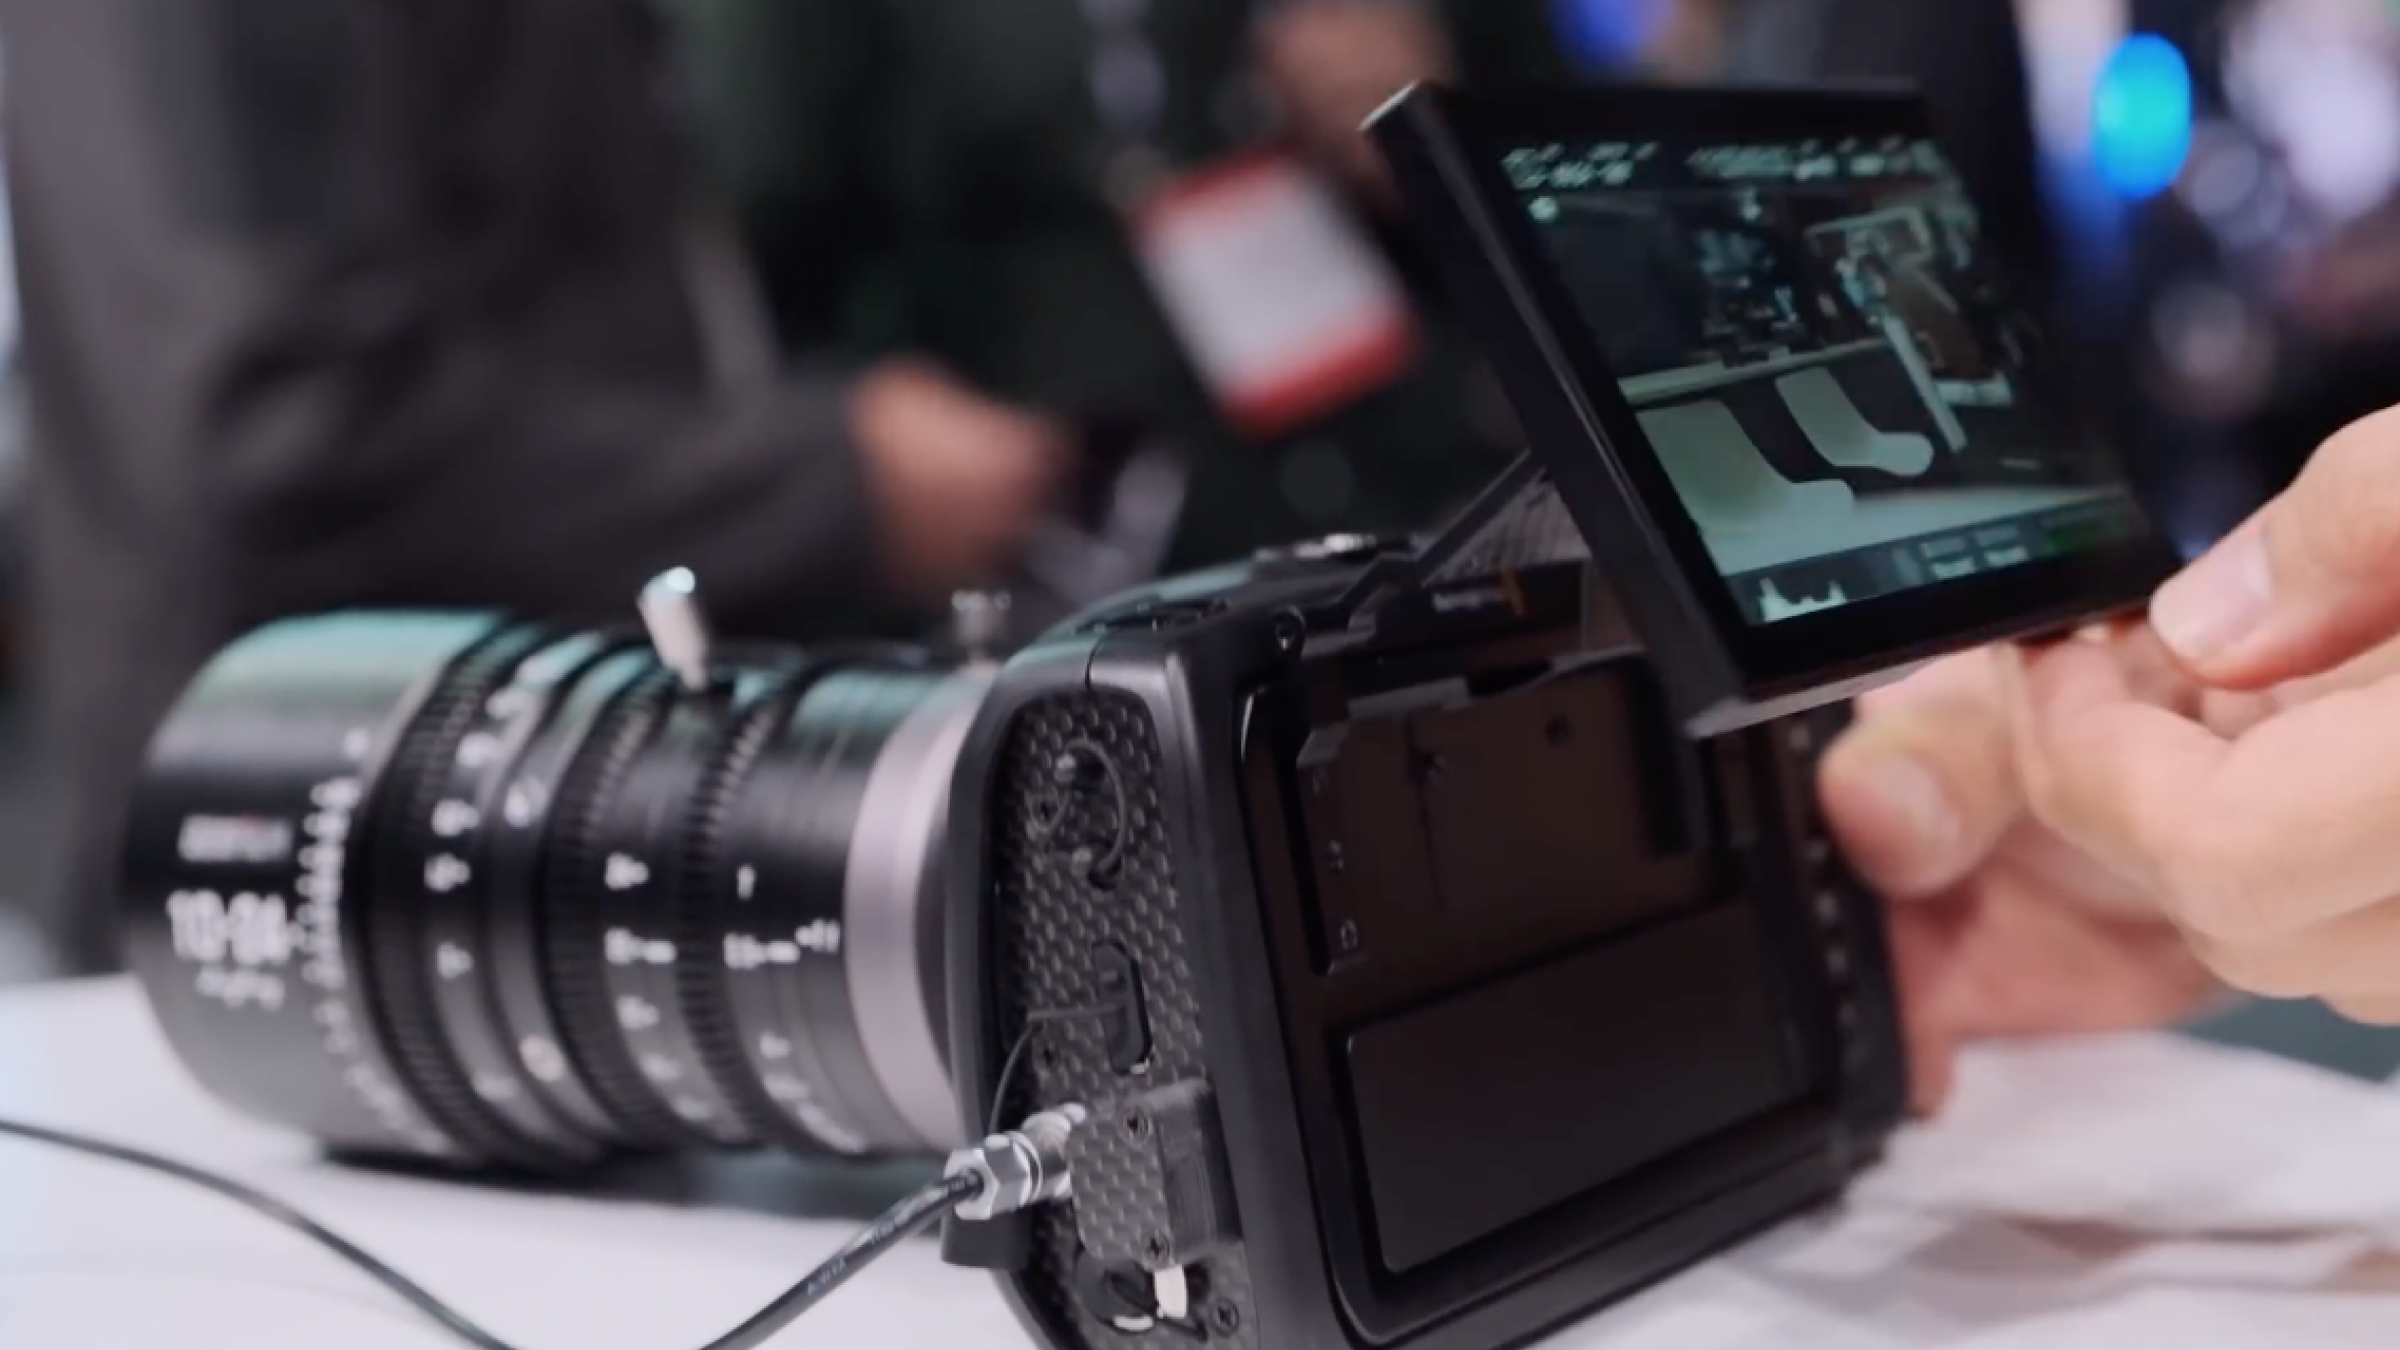 Tilta Created A Bmpcc Mod Kit That Turns The Lcd Into A Flip Screen